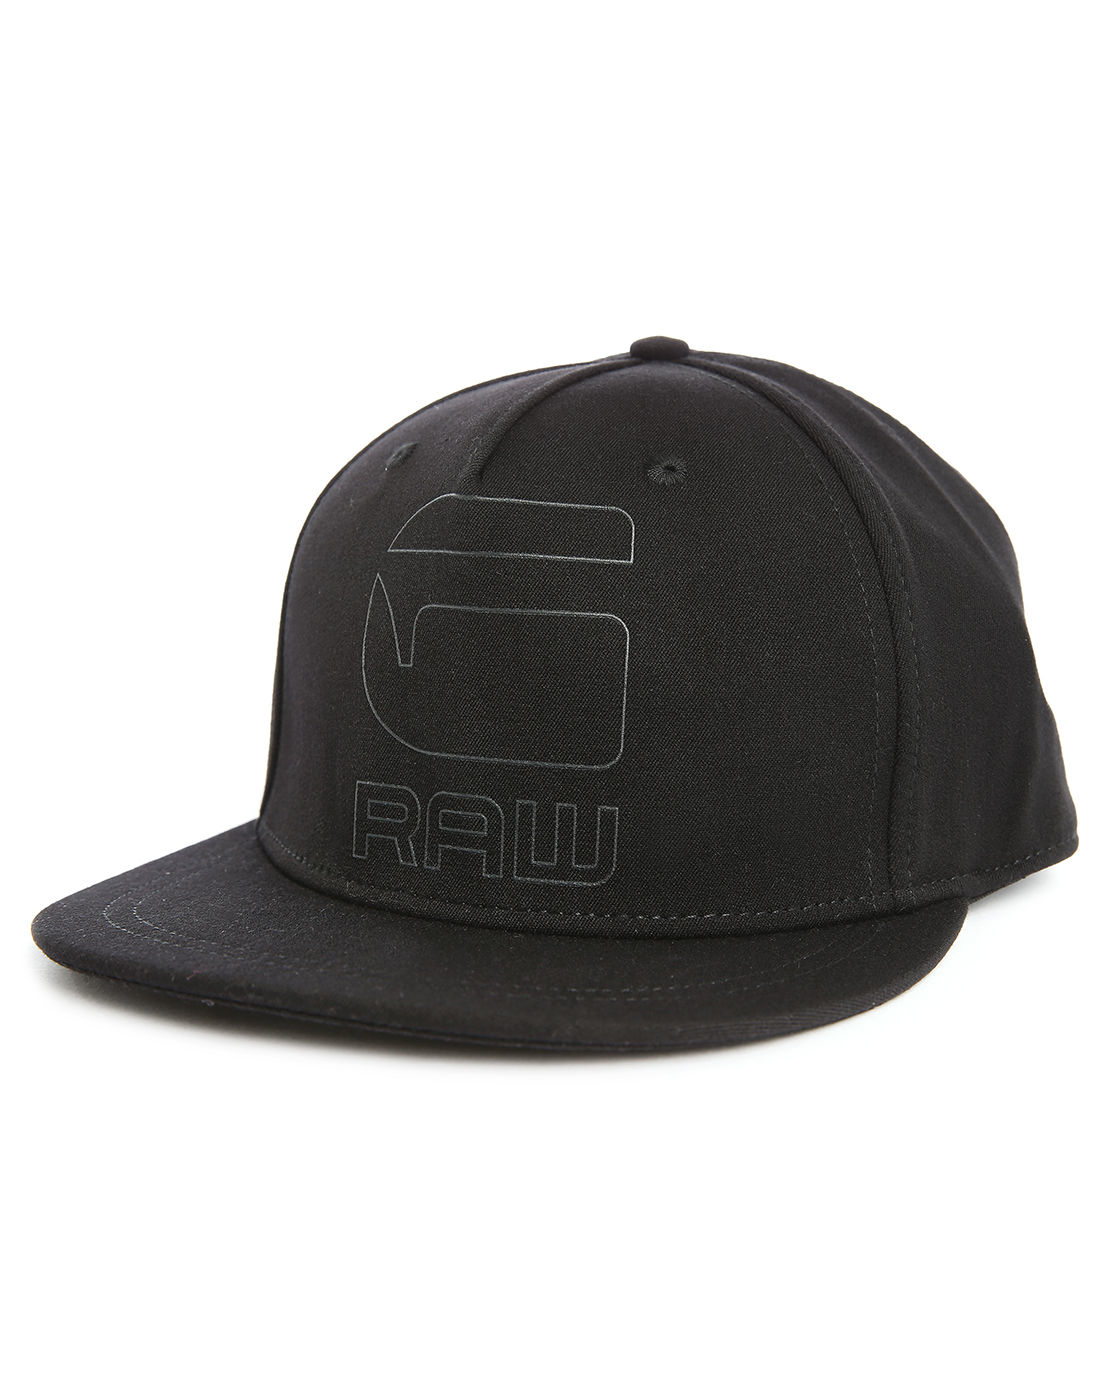 G Star Raw Original Black Cap In Black For Men Lyst